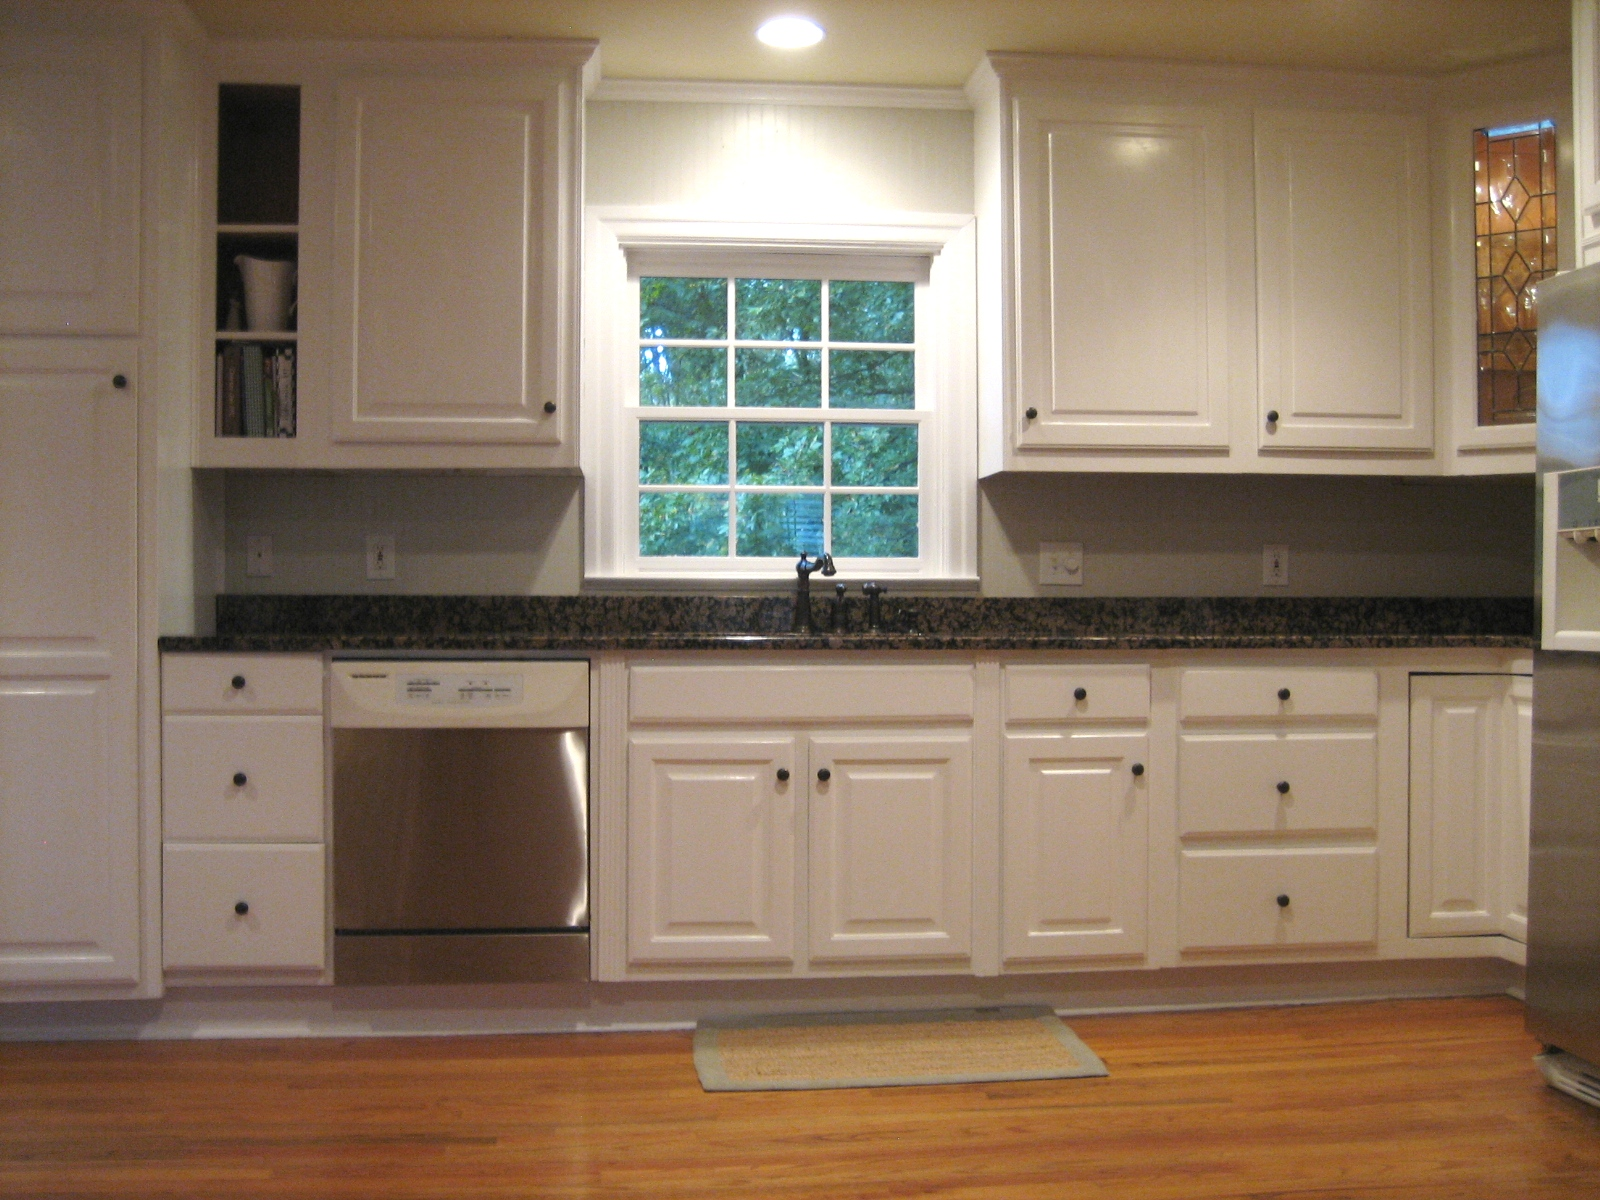 Kitchen Cabinets Wall Cream Color Kitchen Cabinets And Slate Floor Grey